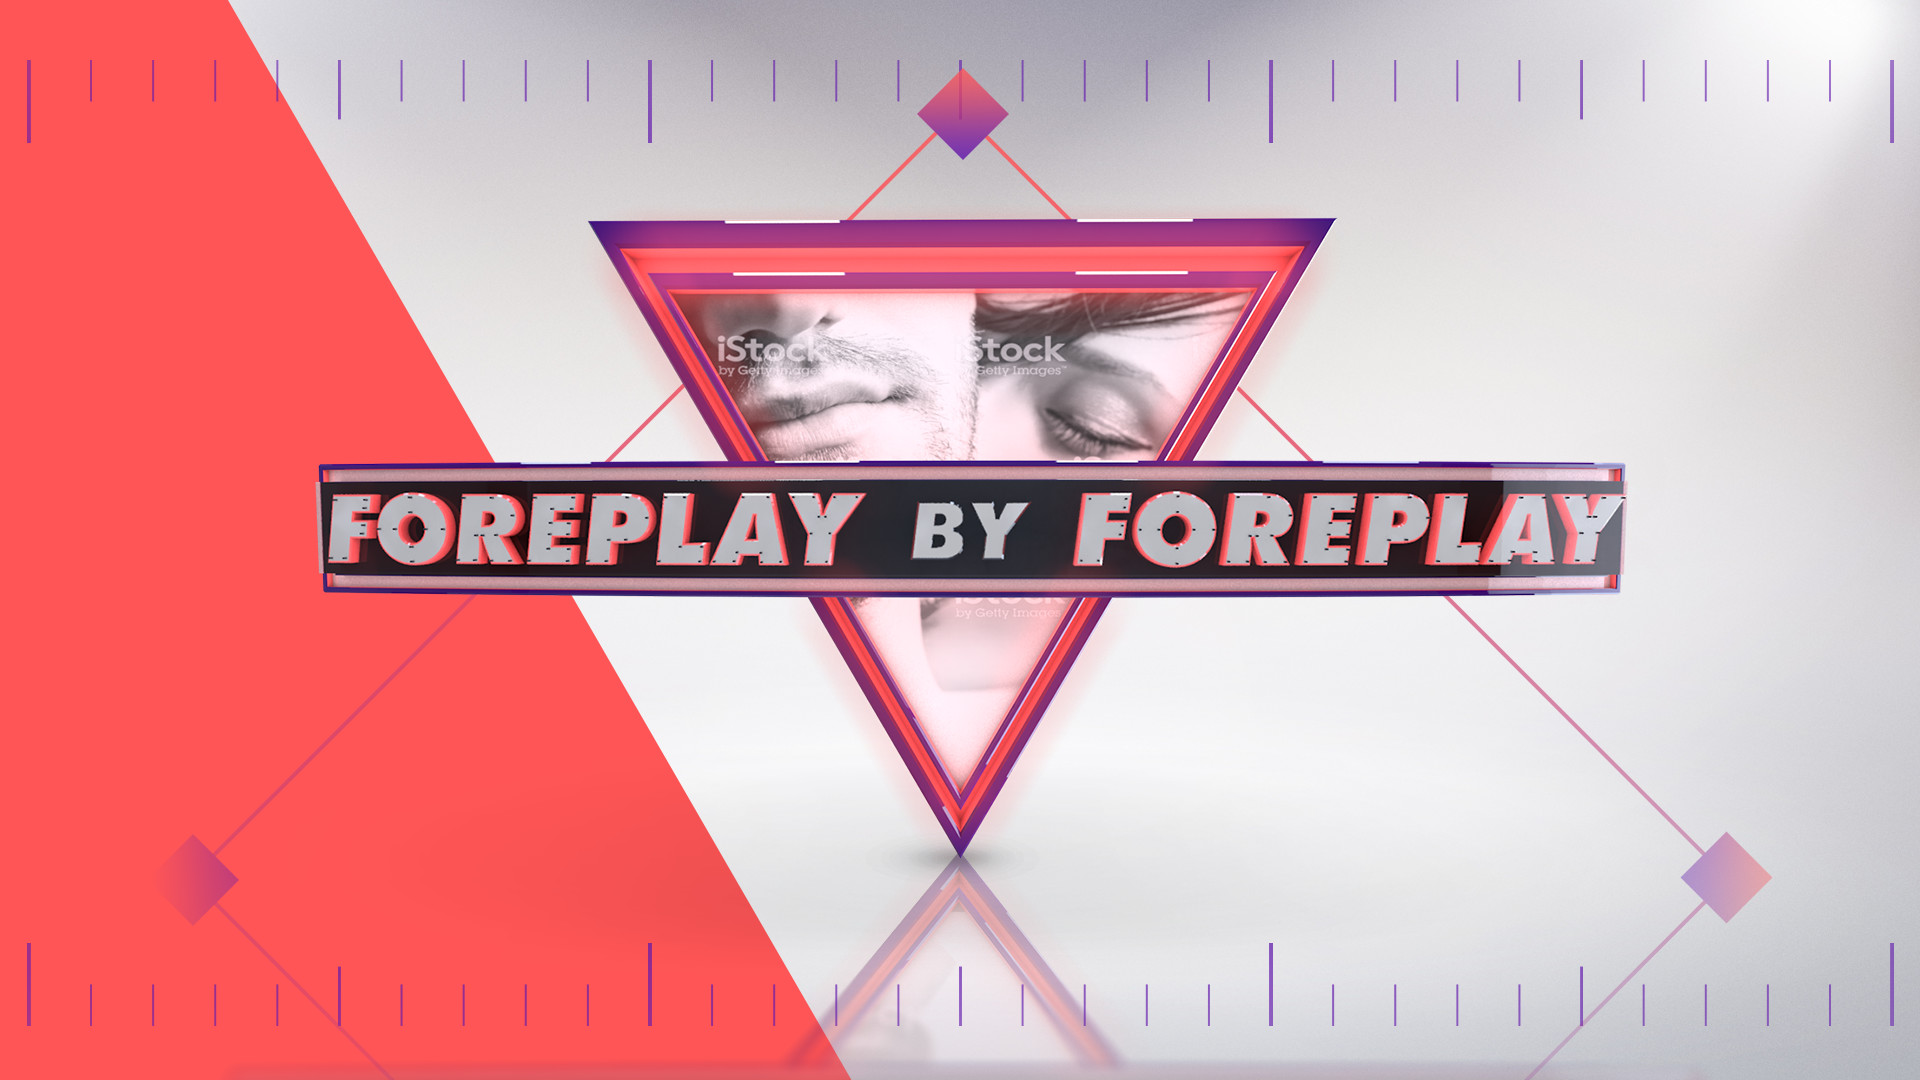 Foreplay x Foreplay Design_V3